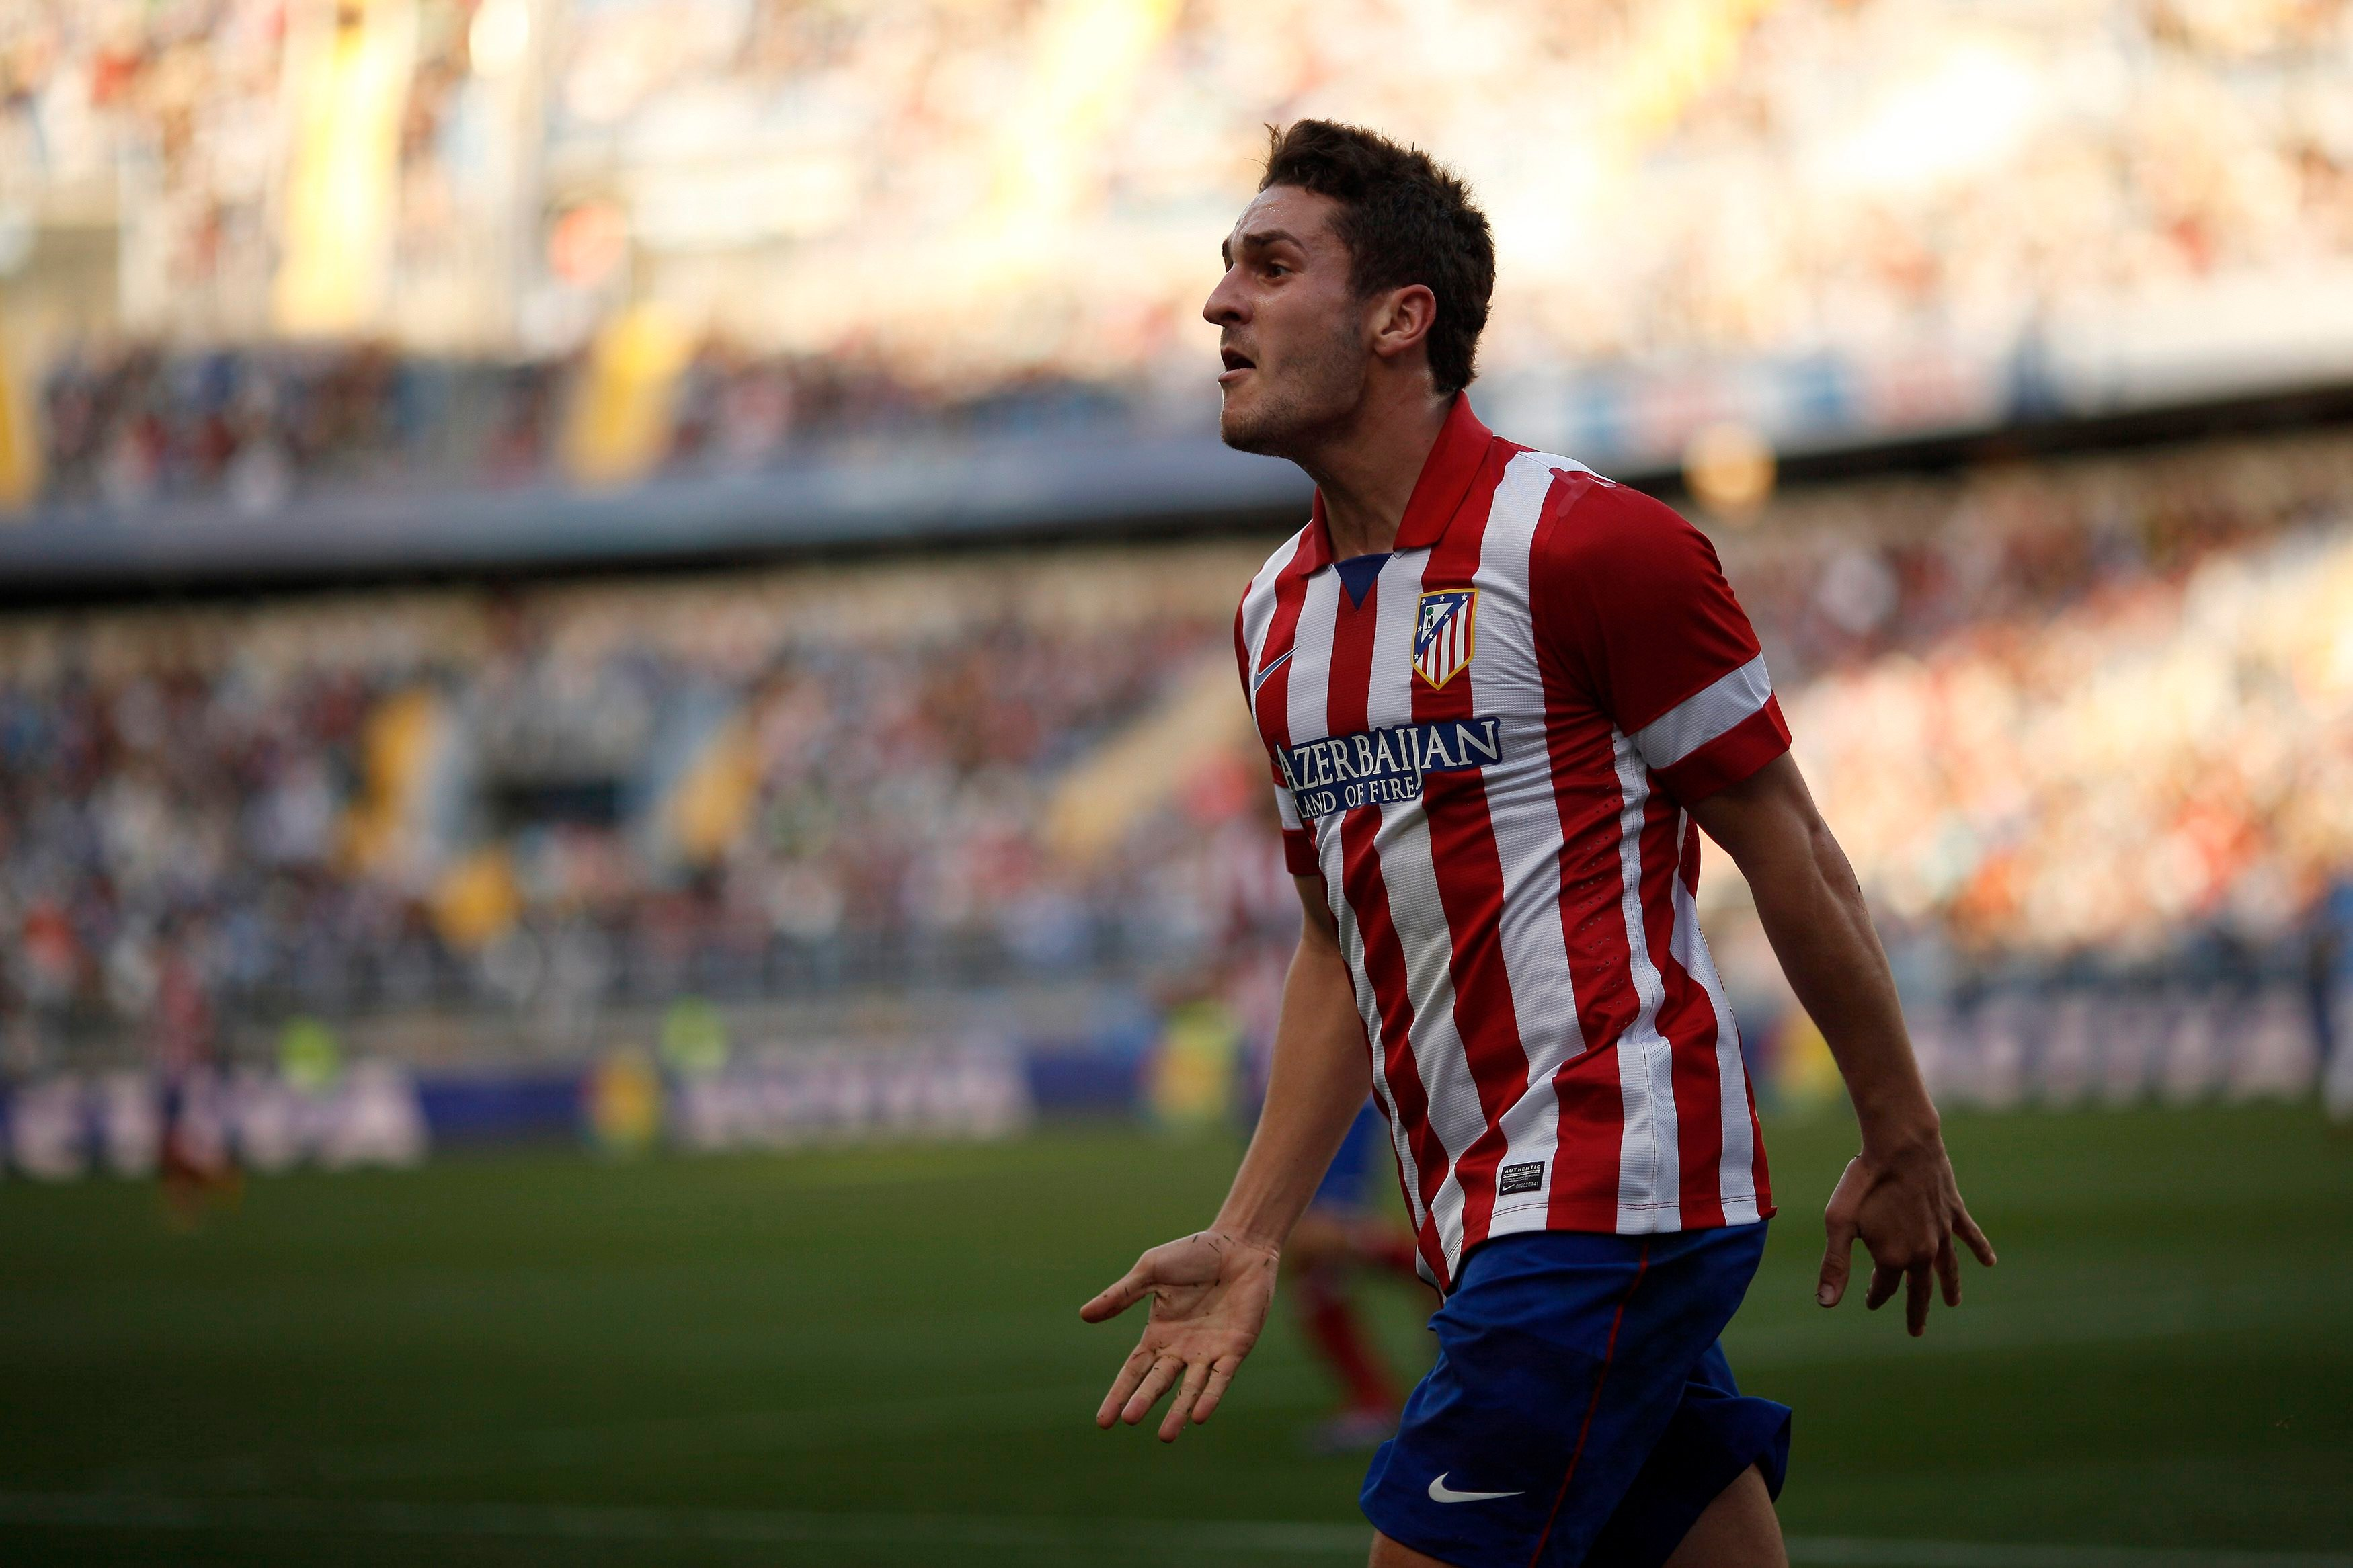 Atletico Madrid's Koke celebrates after scoring a goal against Malaga during their Spanish First Division soccer match at La Rosaleda stadium in Malaga, southern Spain January 4, 2014. REUTERS/Jon Nazca (SPAIN - Tags: SPORT SOCCER)  Picture Supplied by Action Images